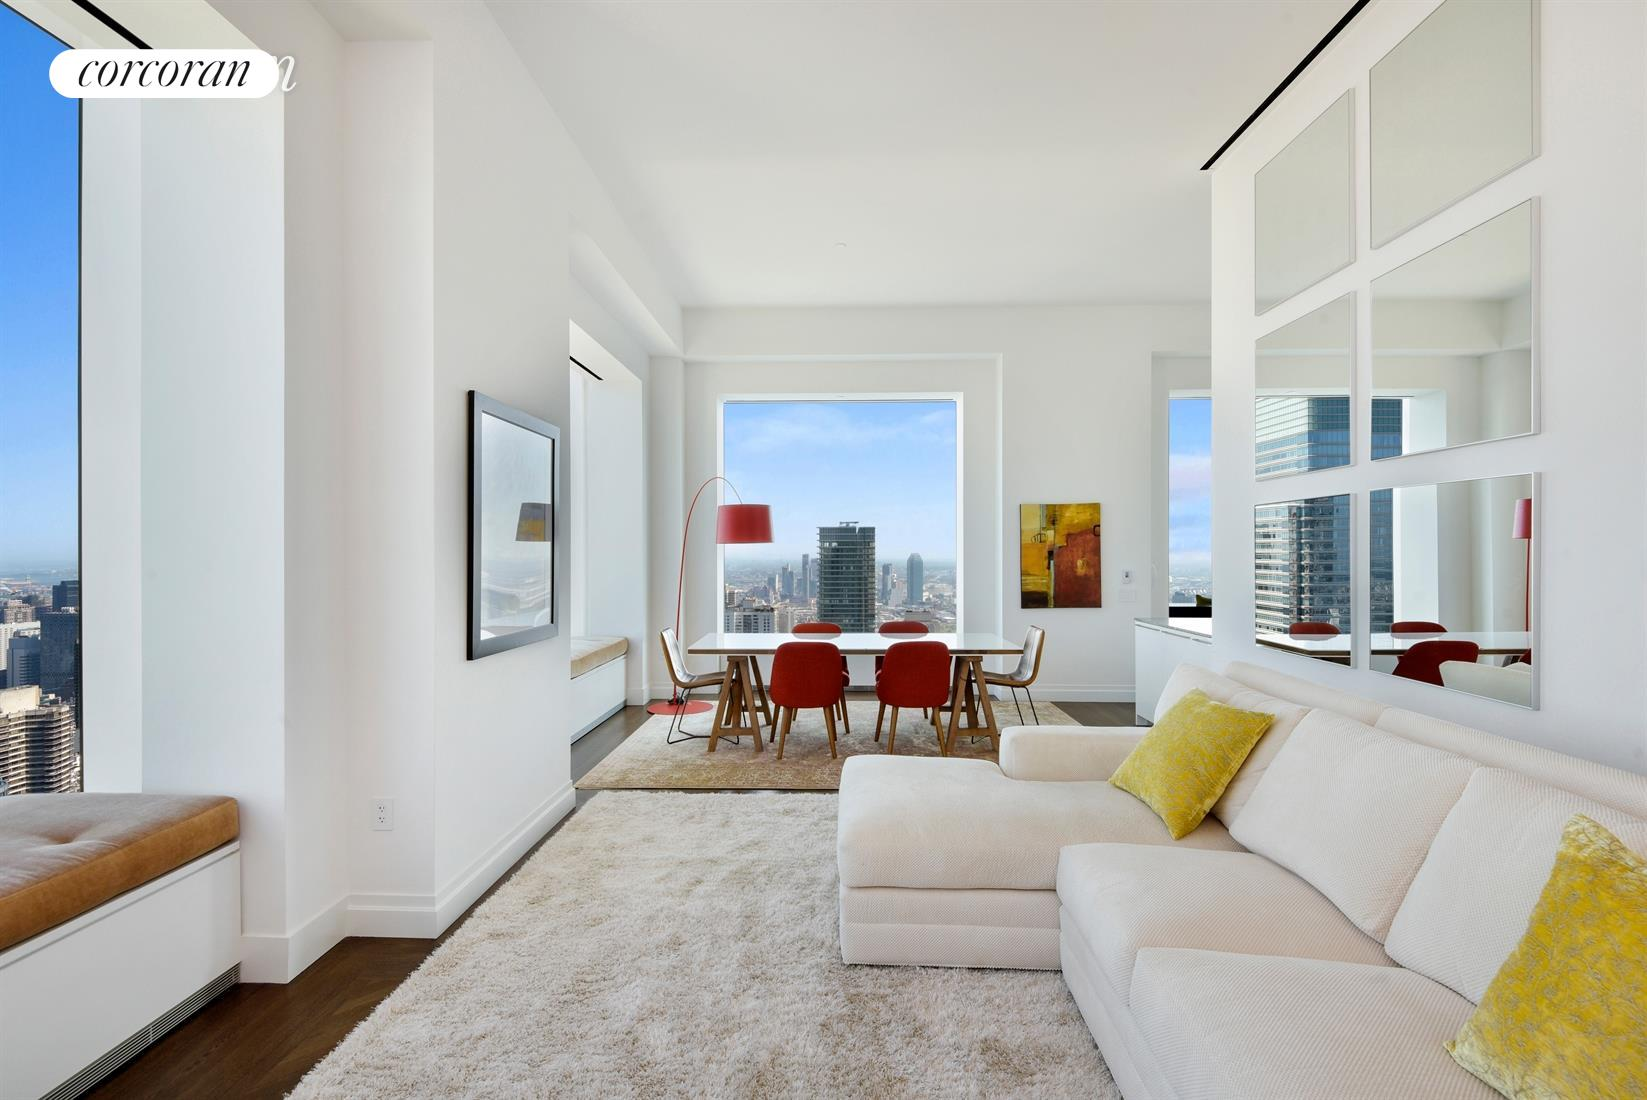 """Unique opportunity to own a rarely available two-bedroom two-and-a-half-bathroom home in the iconic 432 Park. This fabulous home boasts 12'-6"""" ceilings, expansive 10' x 10' windows providing Eastern and Northern exposures with sweeping views of Central Park and the East River. A gracious foyer leads to a grand corner living and dining room. The windowed eat-in kitchen includes a counter into the dining area, a long breakfast bar positioned by the window, white lacquer cabinets and natural oak cabinetry, marble counter-tops, Miele stainless steel appliances and Dornbracht polished chrome fixtures. The master bedroom suite has amazing Central Park views and the master bathroom has marble floors and walls, cubic marble vanities, custom wood cabinetry, soaking tub and separate shower, radiant heated floors and Dornbracht polished chrome bath fittings. Semi-private elevator landing and service entrance. Building amenities include en-suite dining, room service, lounge, private restaurant, outdoor terrace, 75 foot indoor swimming pool, gym, spa, steam room, sauna, massage, library, billiard room, conference room, screening/performance venue, playroom, yoga studio, 24-hour doorman, and an onsite parking garage."""